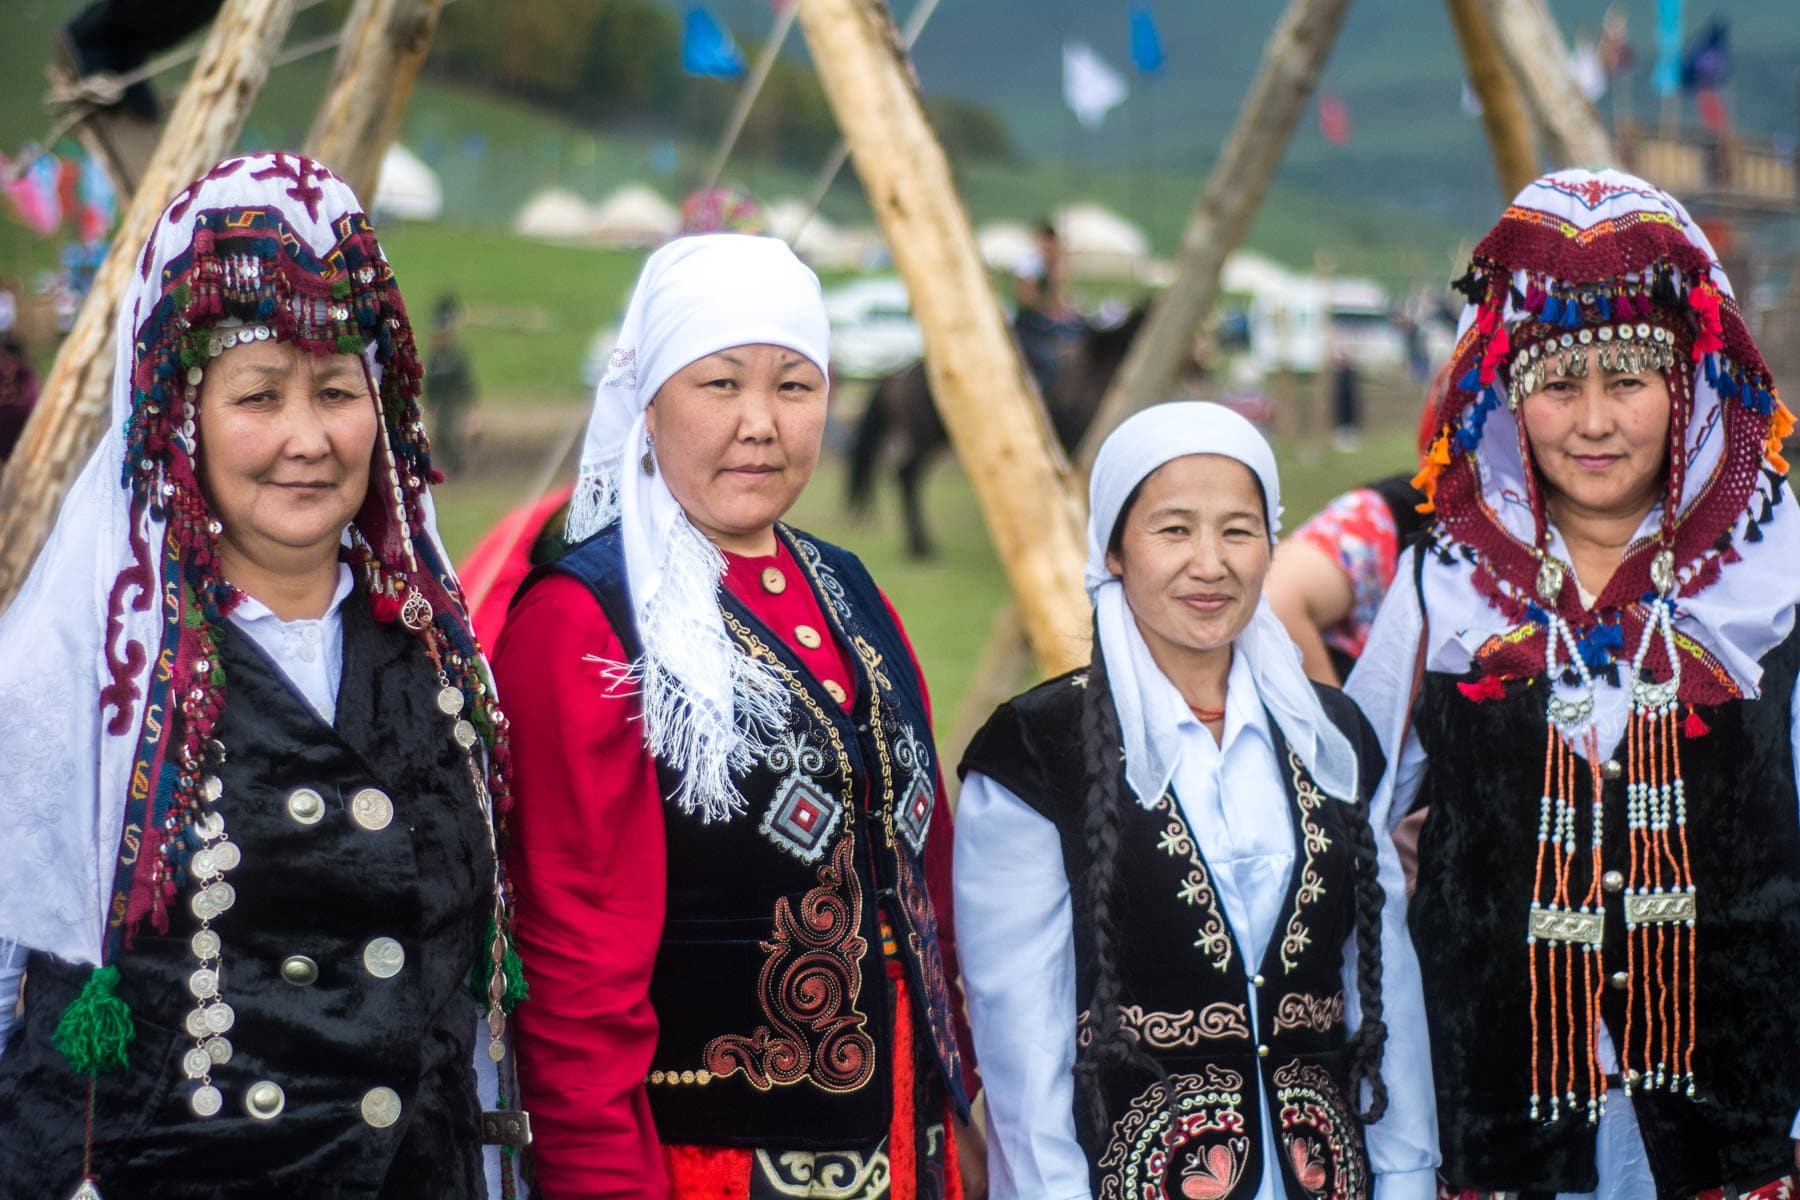 Women in traditional clothes at the 2016 World Nomad Games - Lost With Purpose